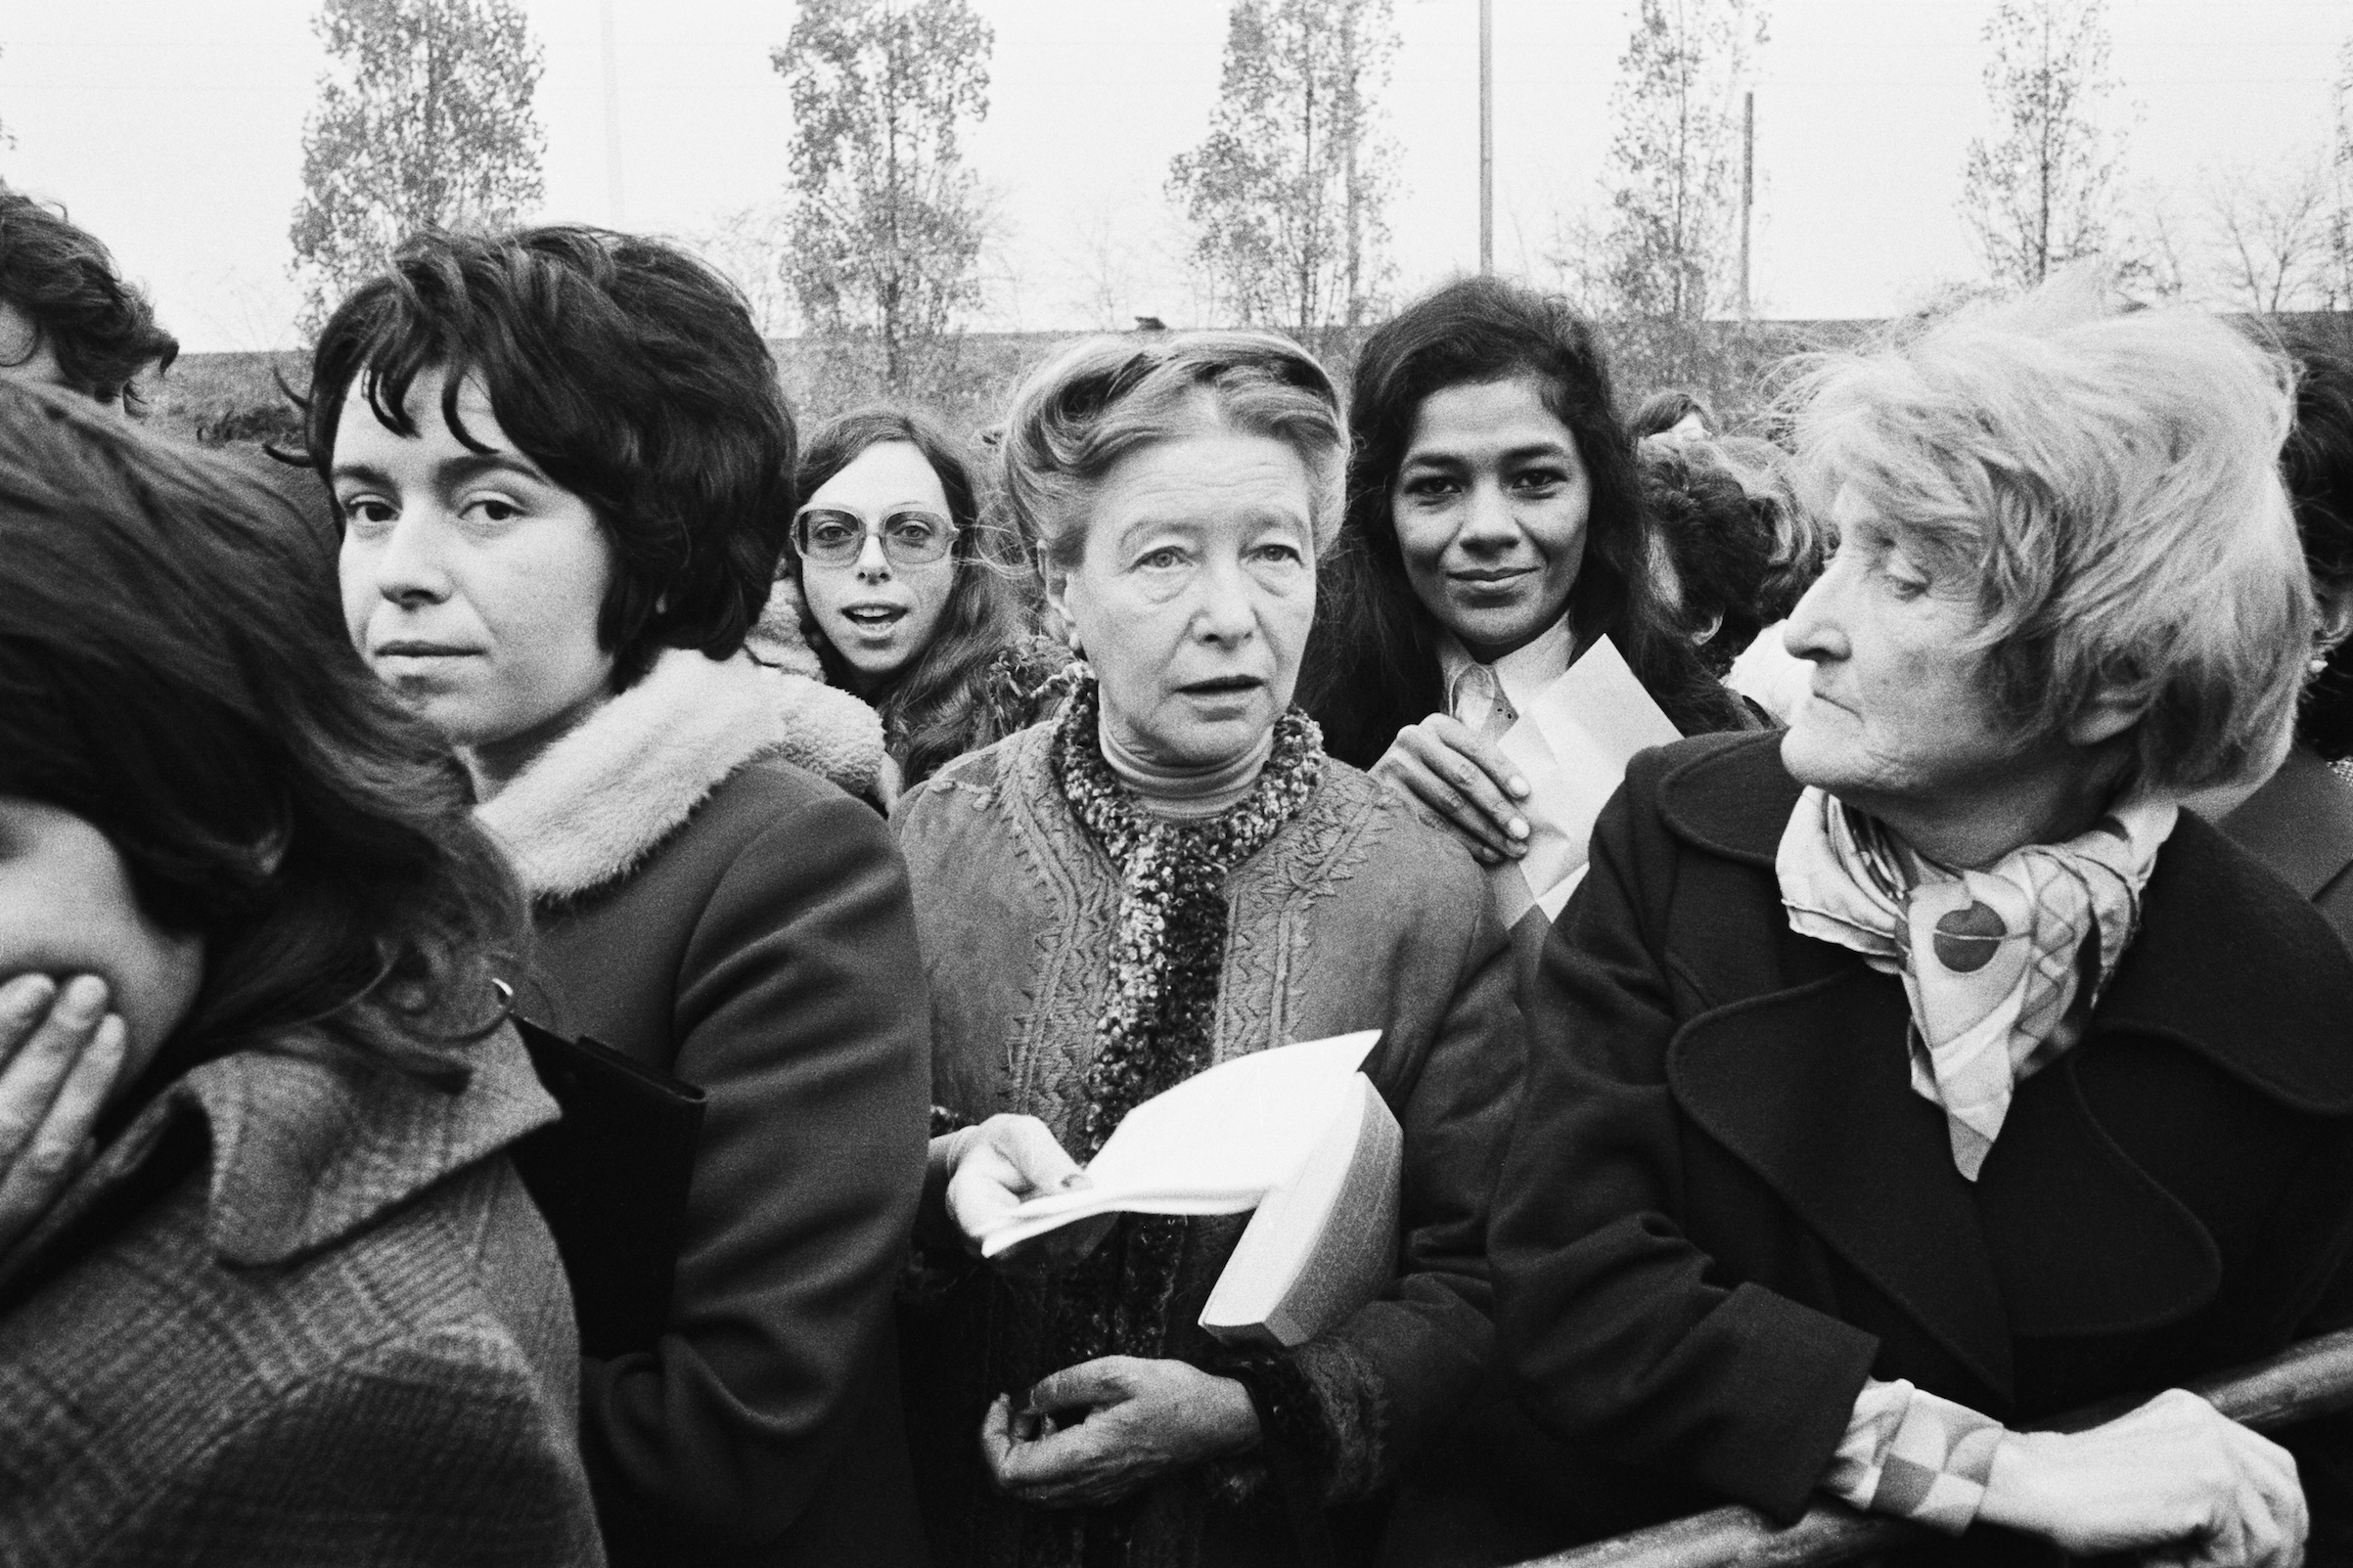 French writer, existentialist philosopher, political activist and feminist Simone de Beauvoir during the landmark Bobigny abortion trial in France in 1972.